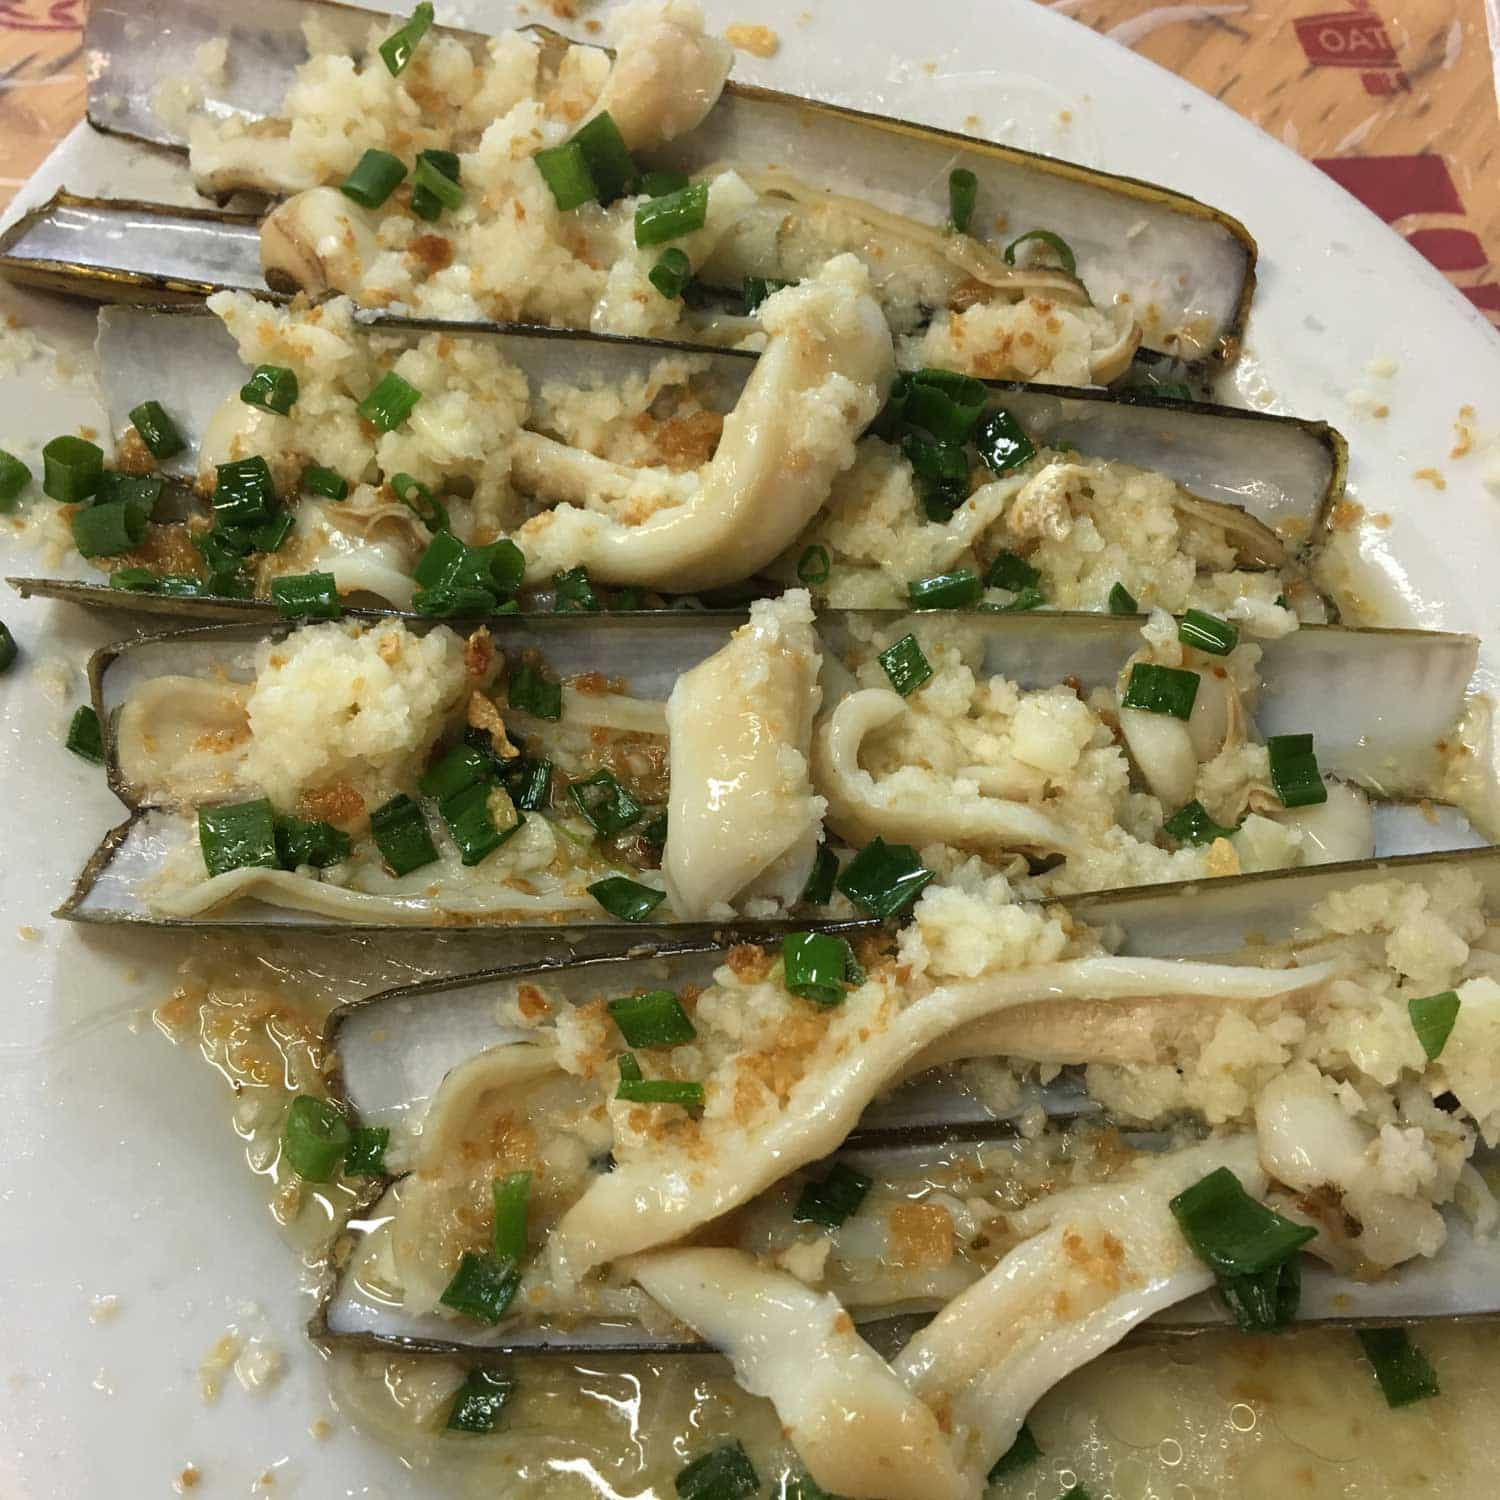 Best Macau Dishes: Razor Clams at He Fa Ma Tou Mei Shi